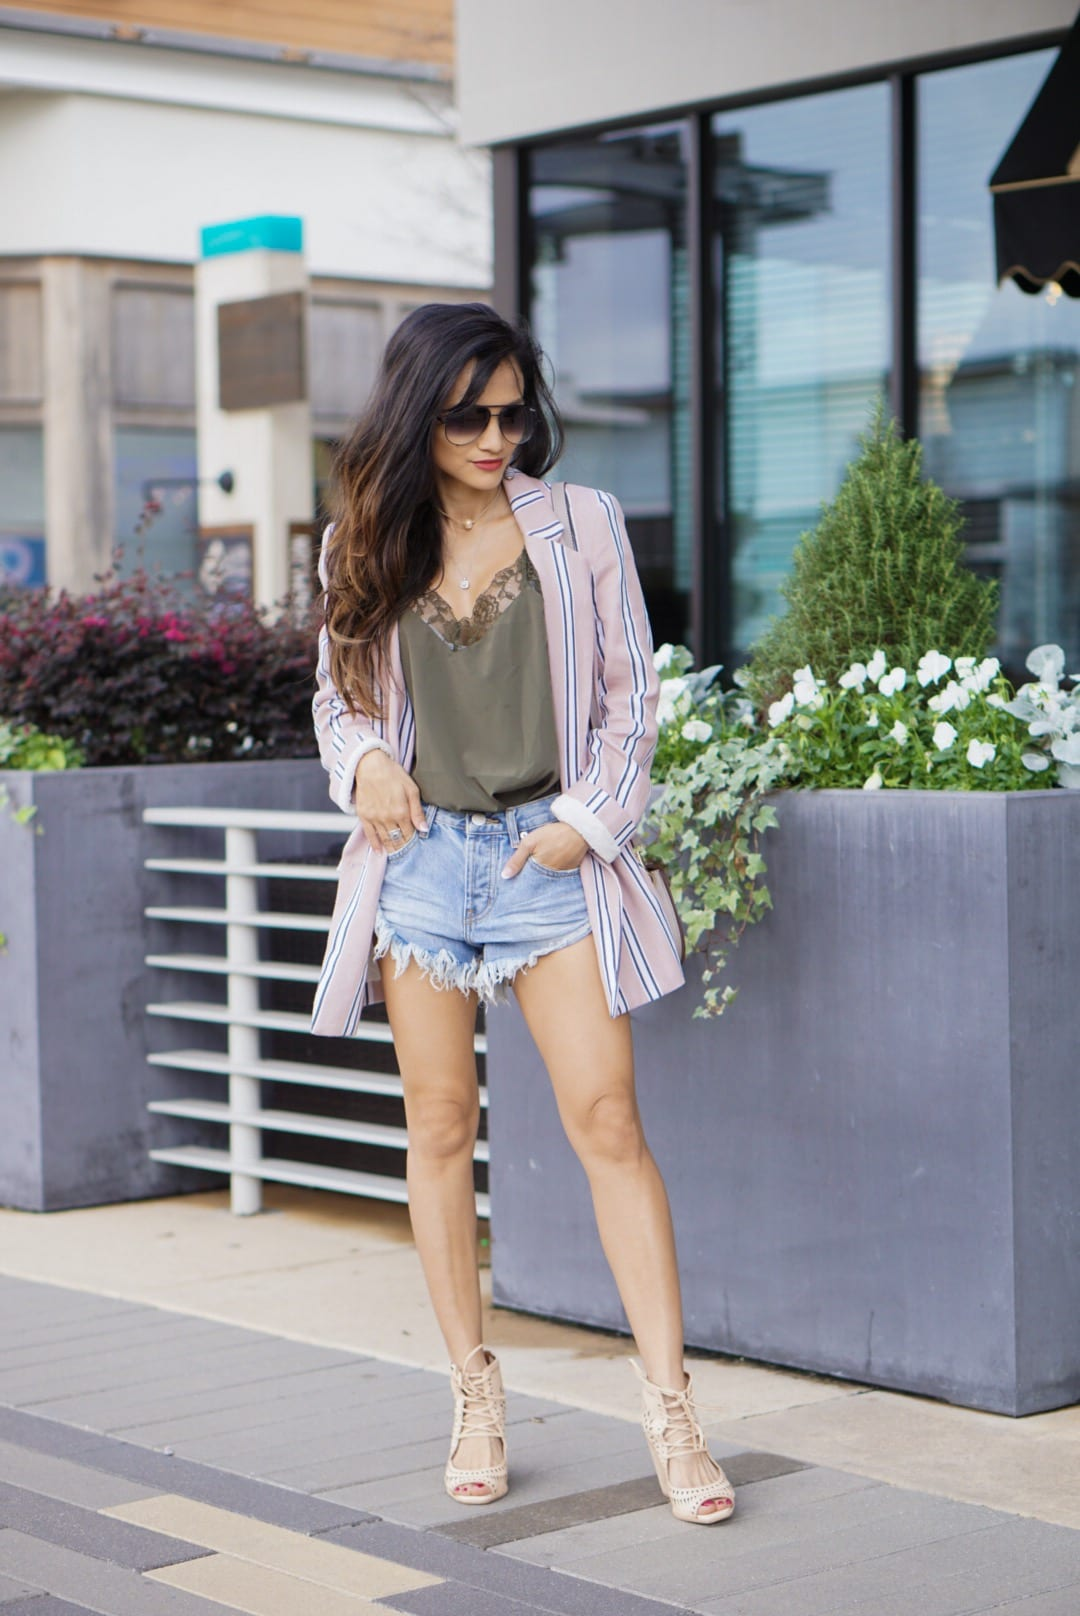 spring favorites, spring style, Uptown Girl Blazer, boyfriend blazer, free people blazer, cut off shorts, free people shorts, shop bop, revolve, quay sunglasses, Jeffrey Campbell Rodillo Wedge Sandals